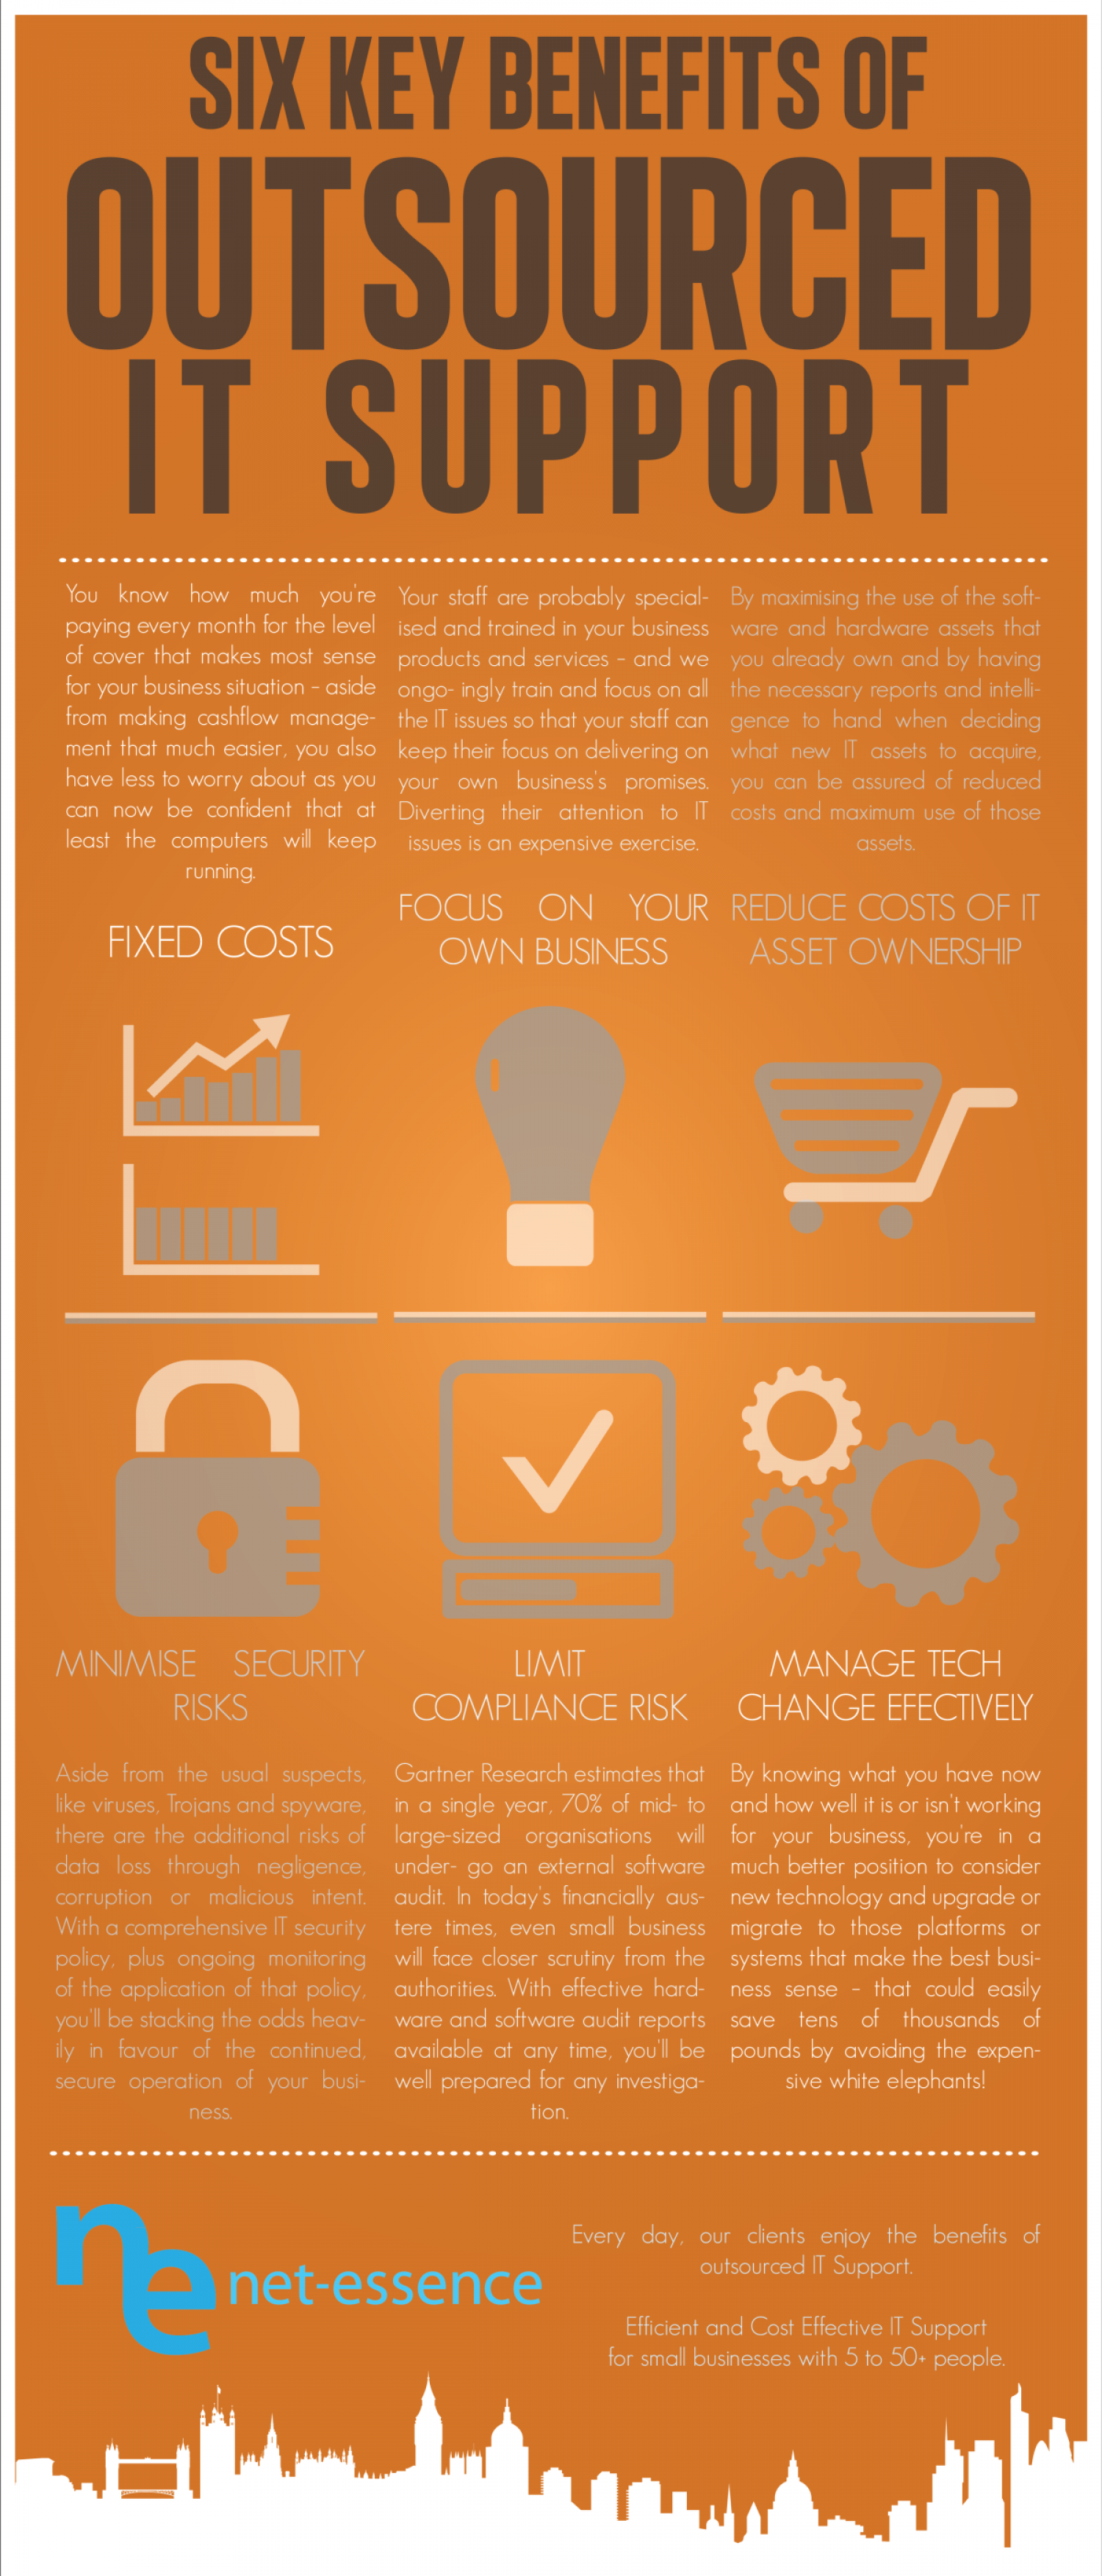 Sic Key Benefits of Outsourced IT Support Infographic